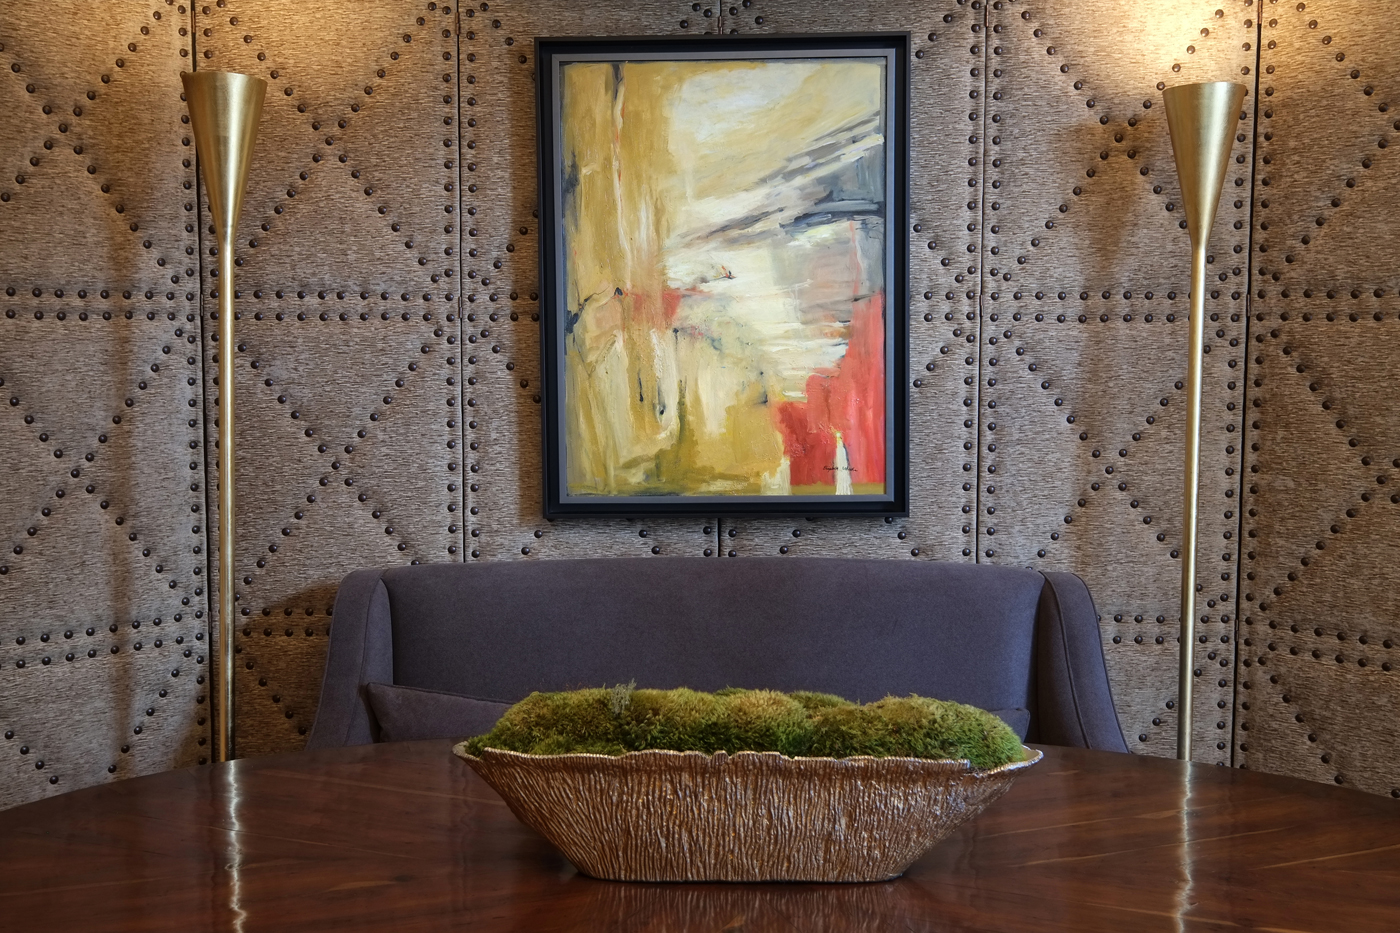 Upholstered and studded panel backdrop for floor-standing torchieres, settee, and abstract painting | Savage Interior Design